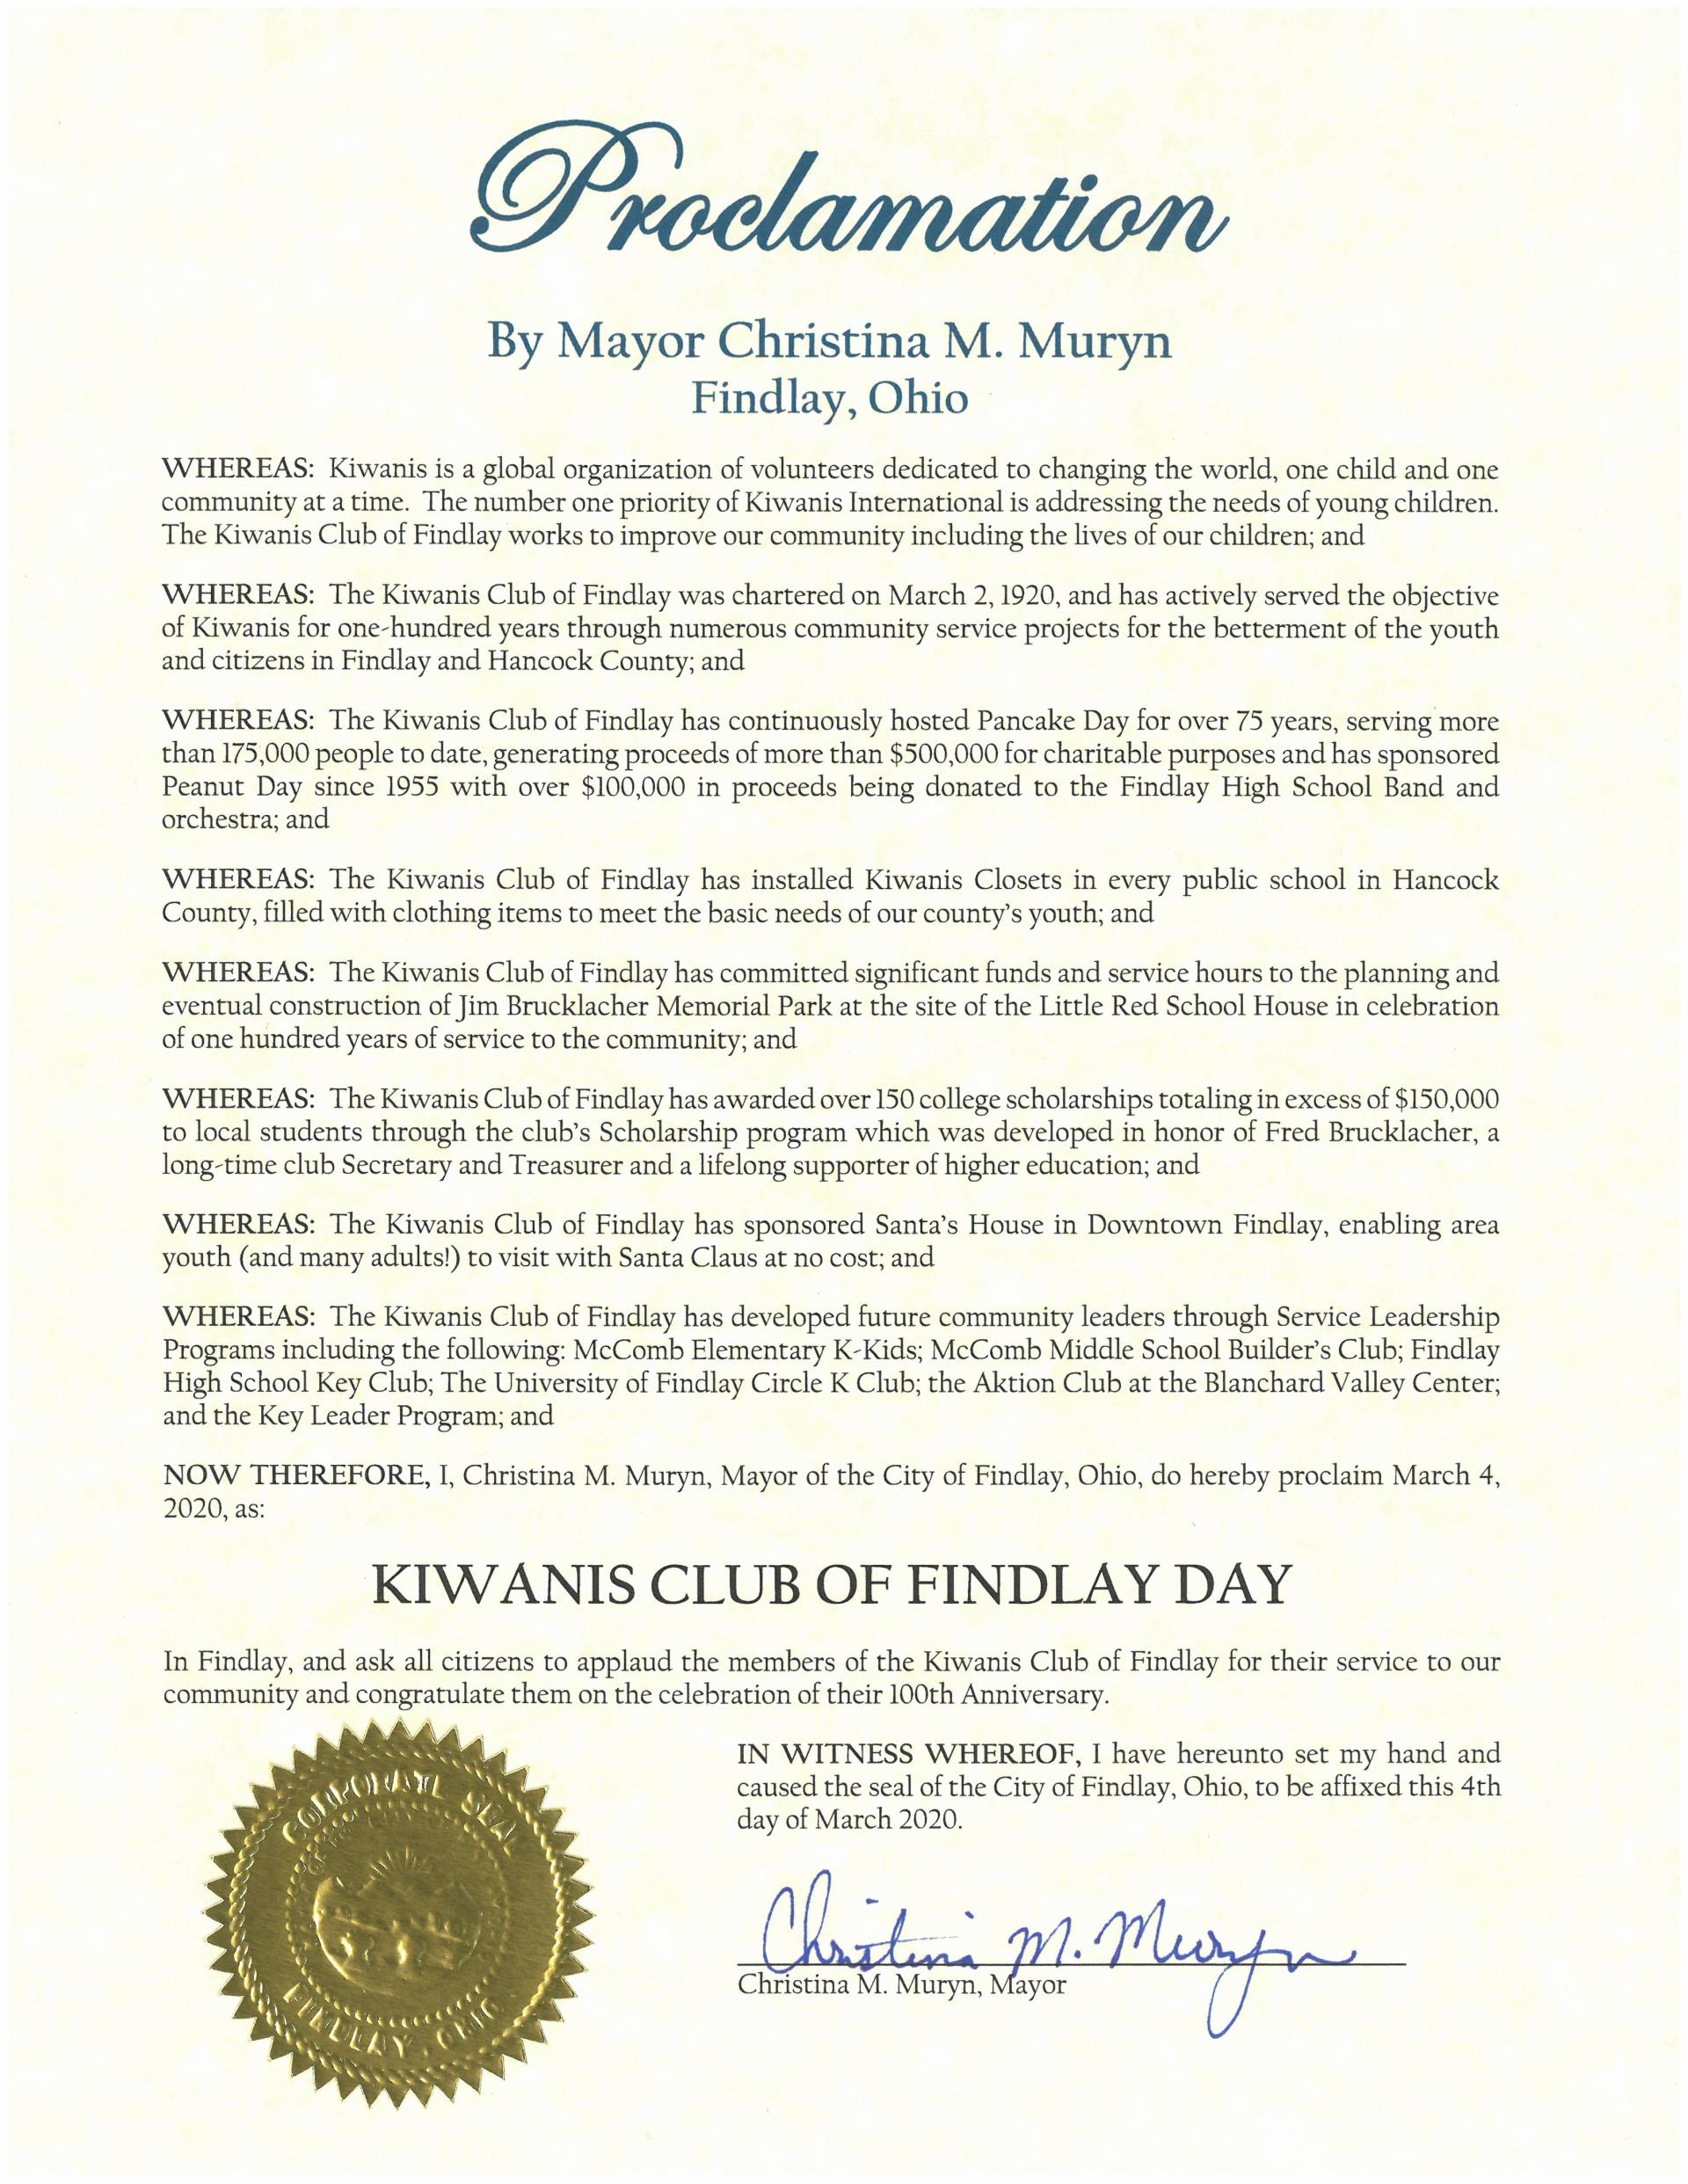 2020.03.04.Kiwanis Club of Findlay Day Proclamation